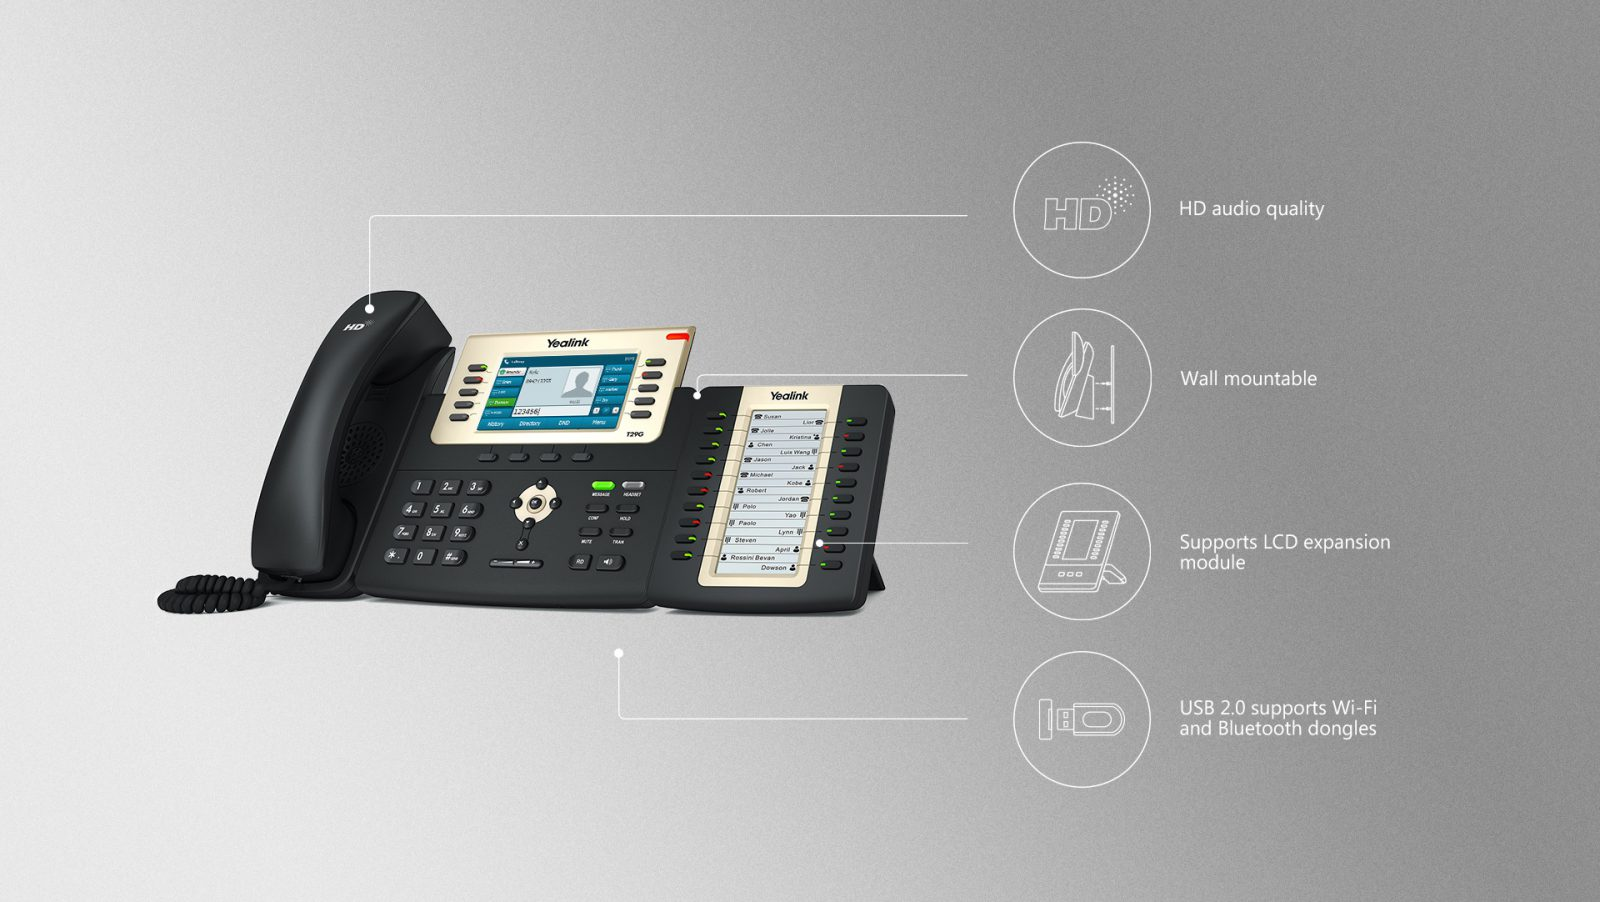 Yealink T29G IP Phone - Hong Kong Hotline: 39001988 - Matrix Technology (HK) Ltd